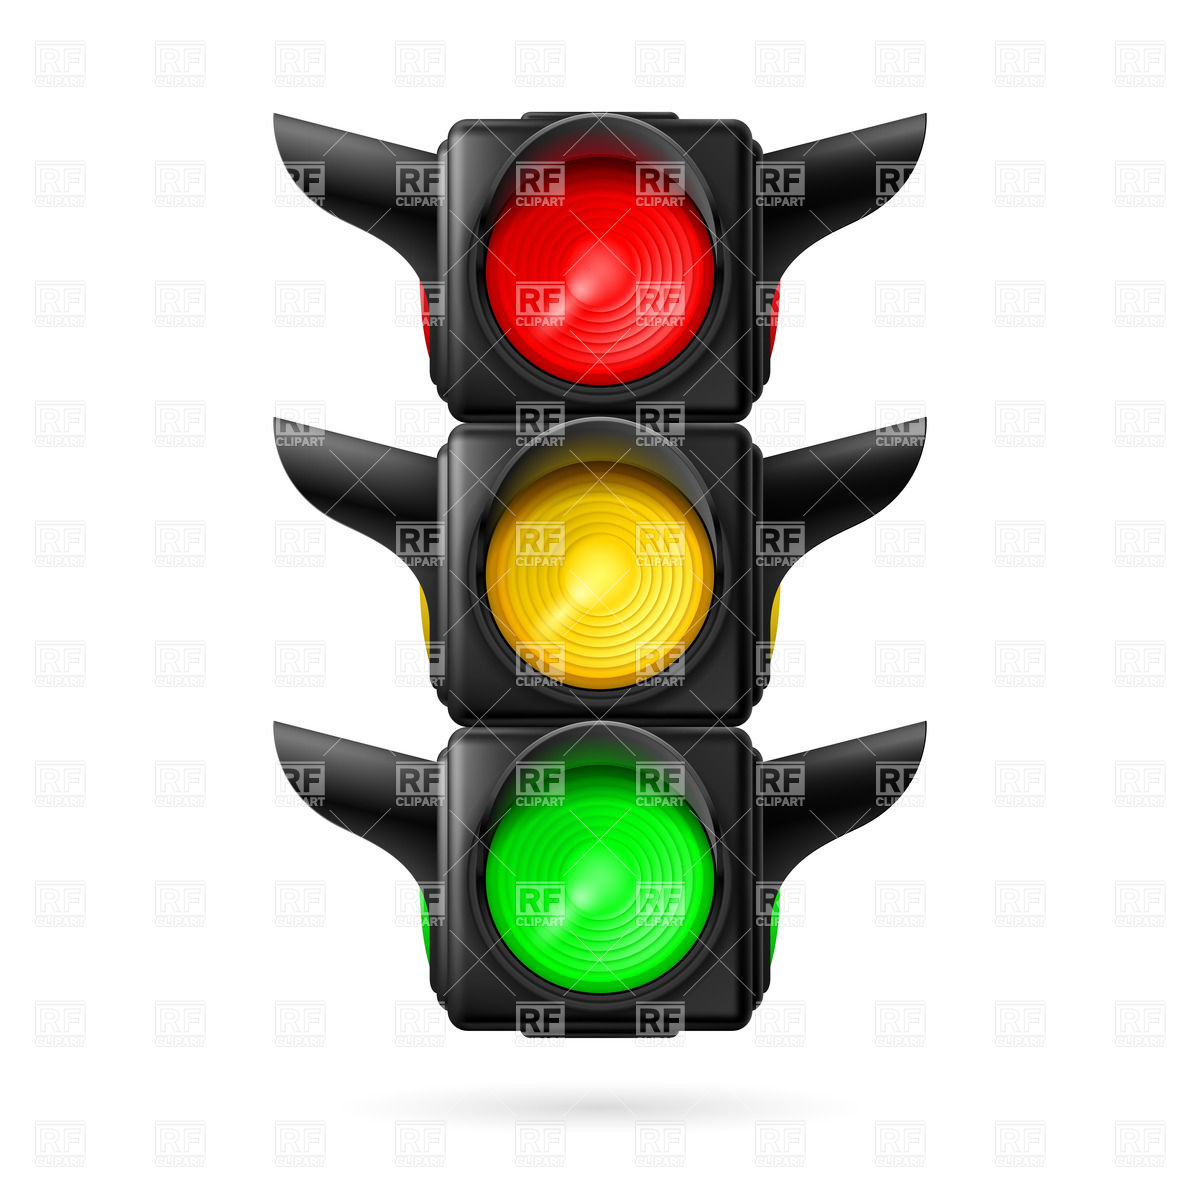 1200x1200 Traffic Light (Semaphore) Royalty Free Vector Clip Art Image